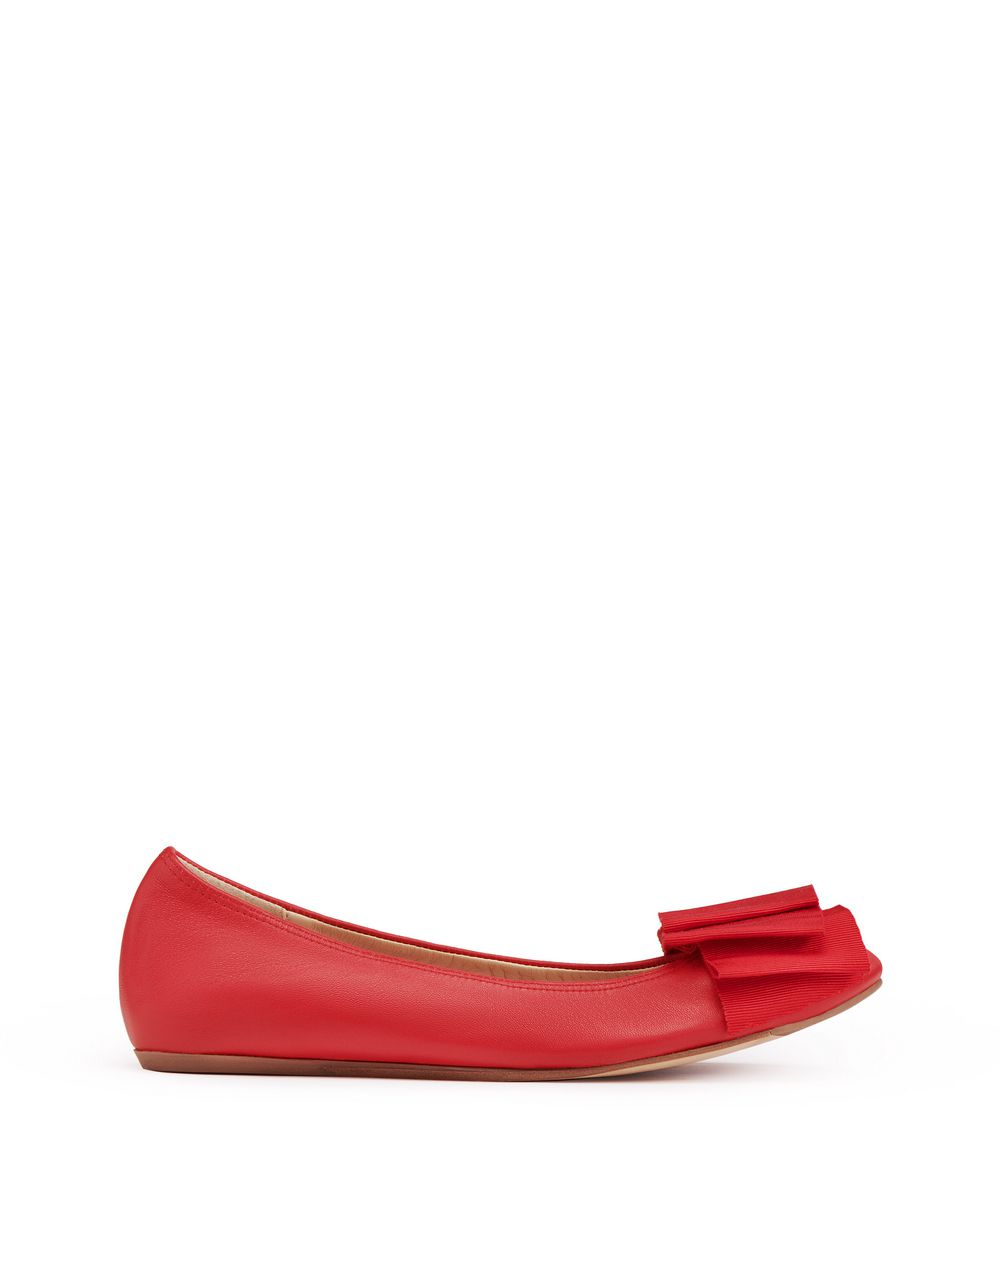 BALLET FLAT WITH POPPY BOW - Lanvin